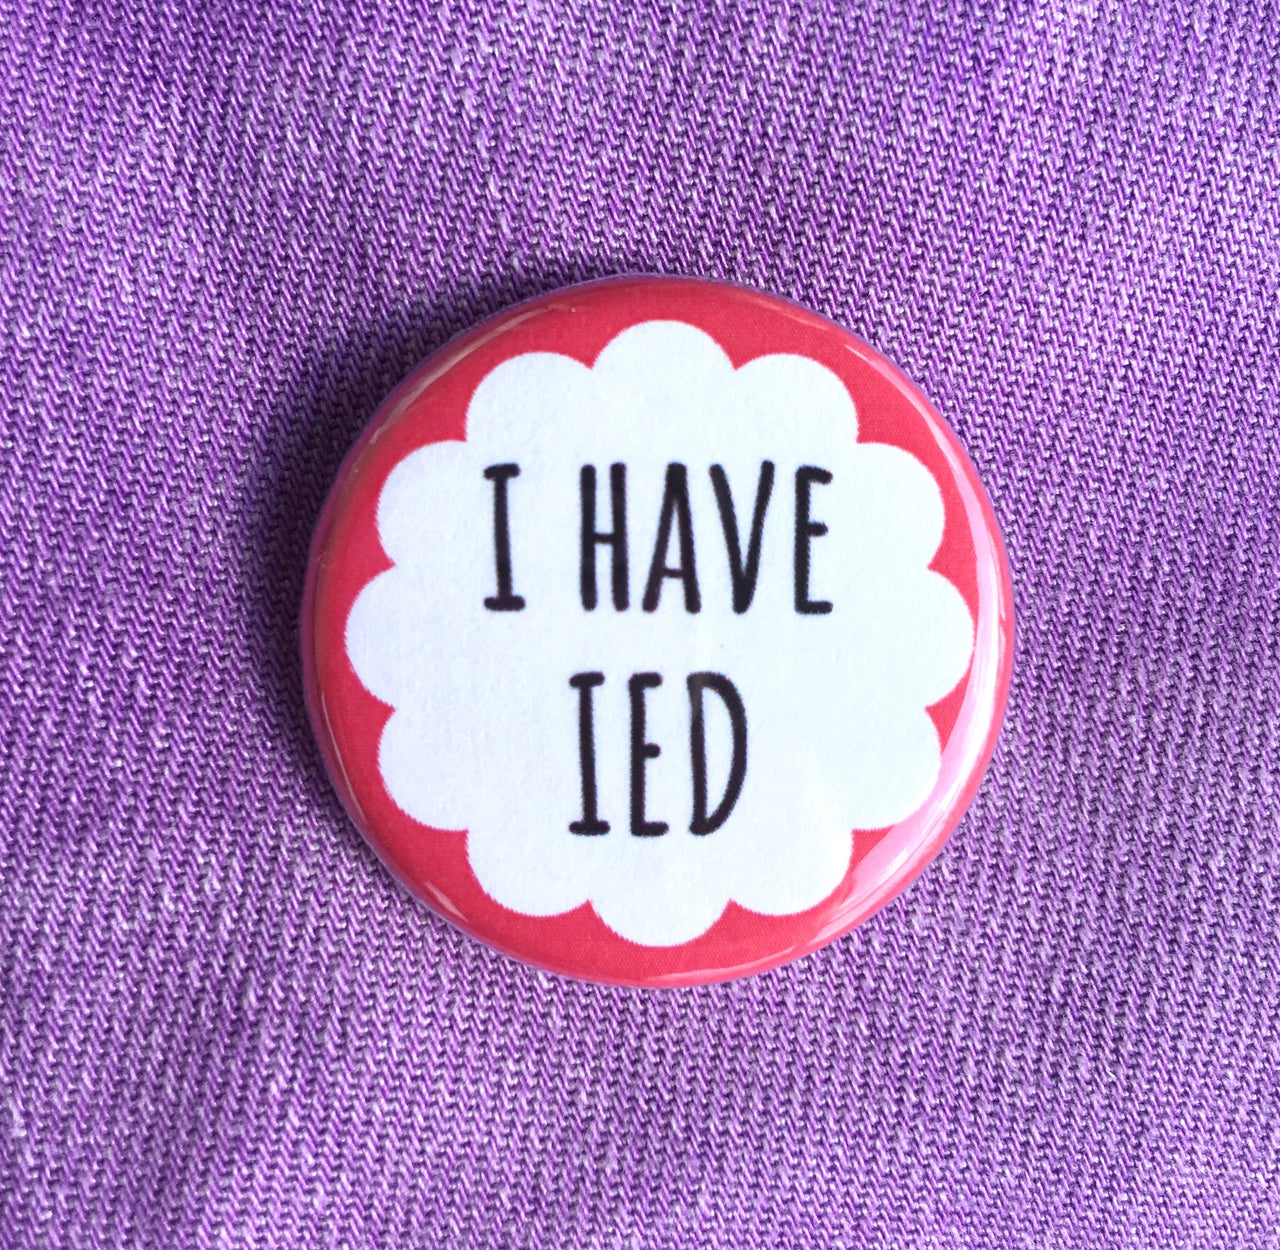 I have IED - Radical Buttons